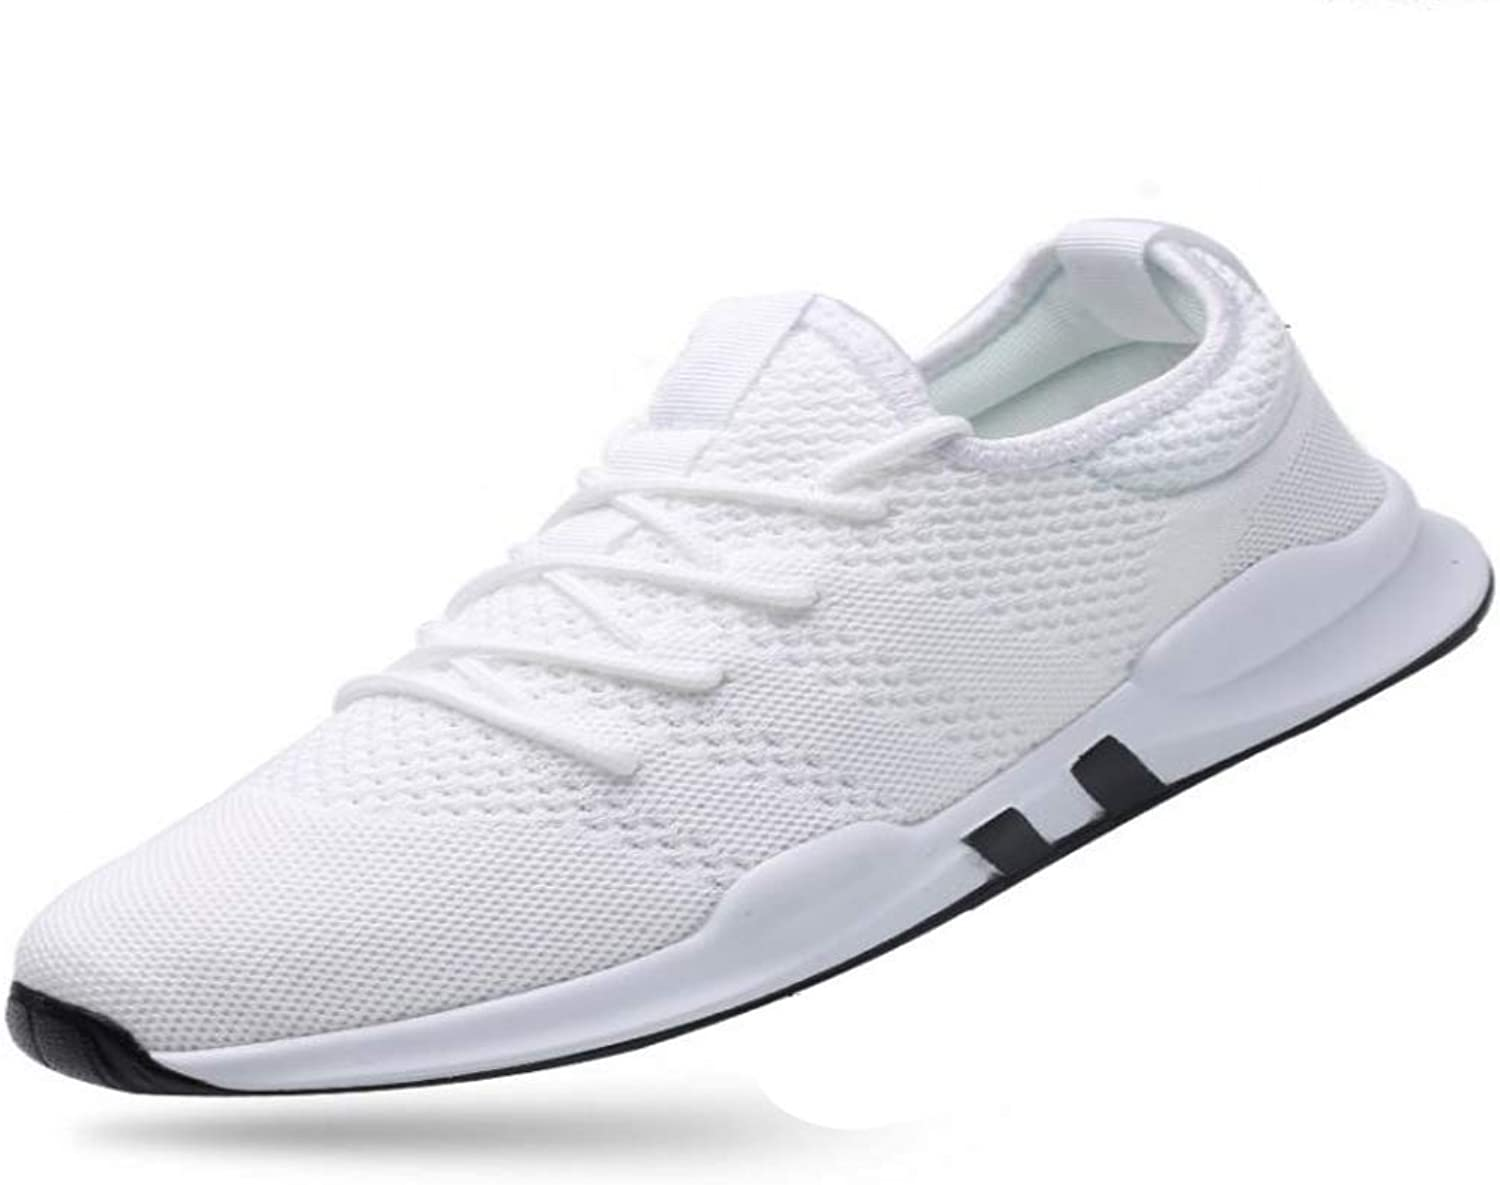 KMJBS Men'S Sneakers Men'S shoes In Summer Breathable Sports shoes In Summer And Spring